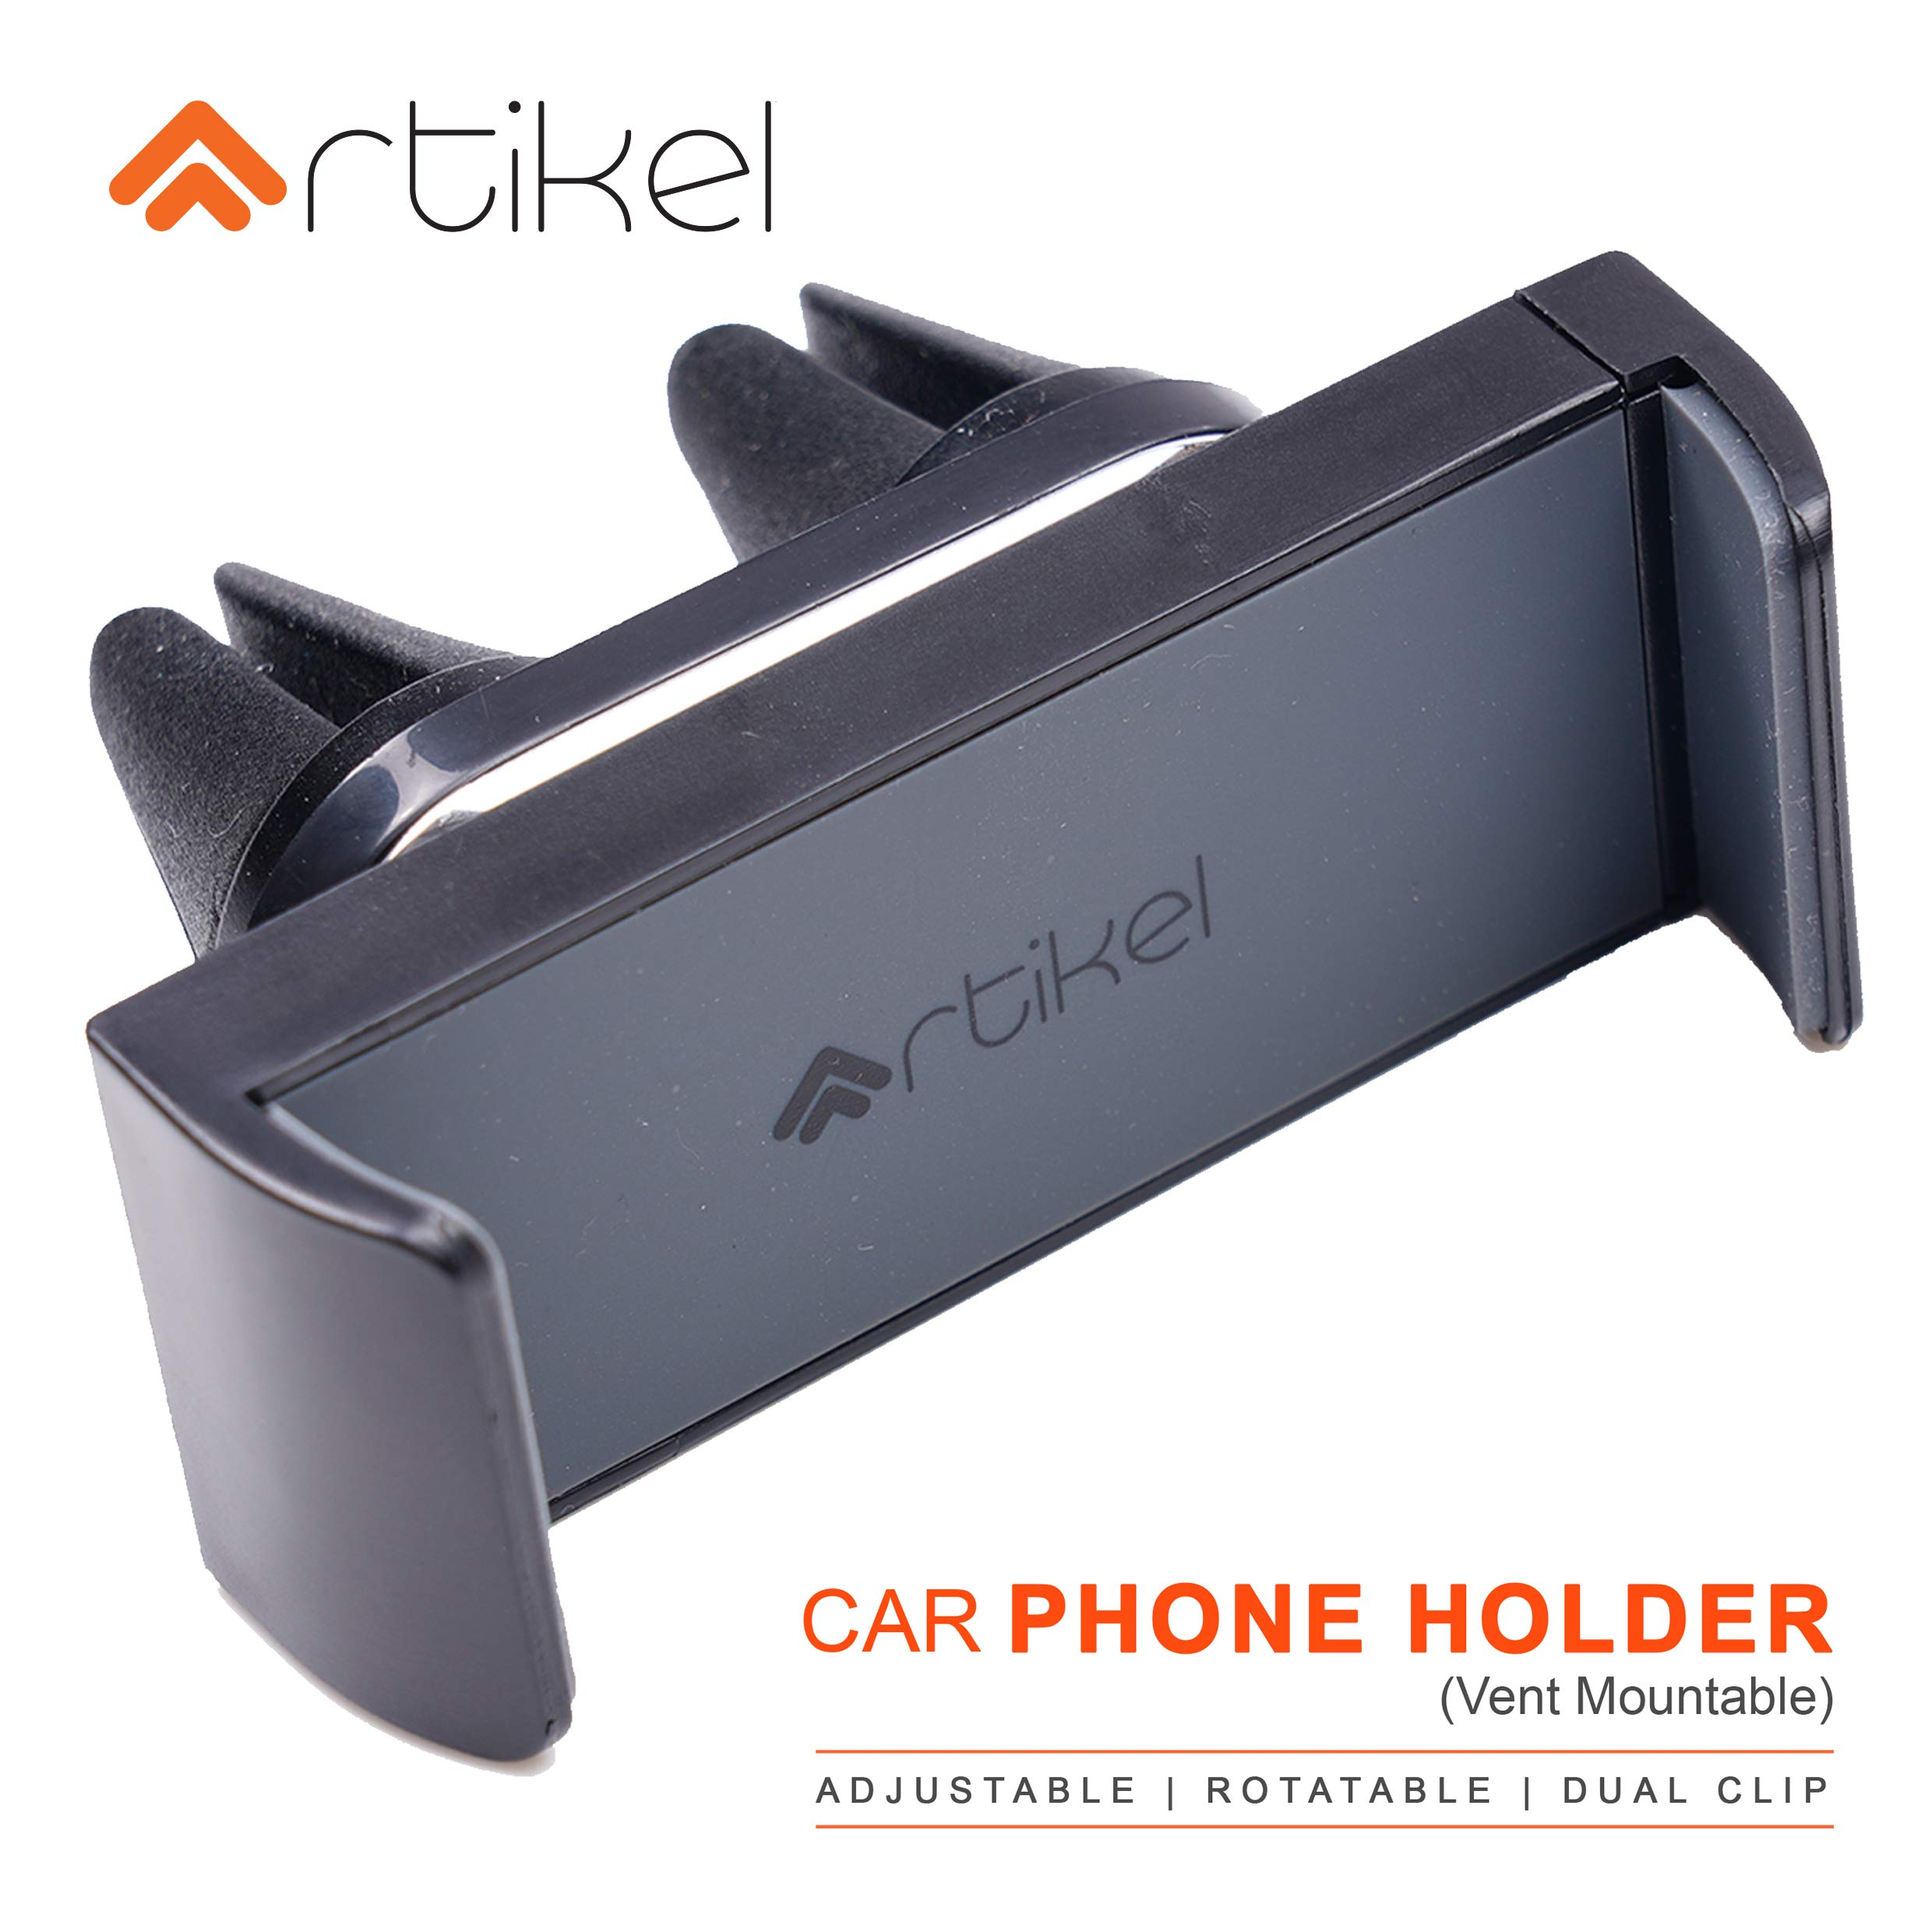 Black Car Air Vent Mount Holder Smart Grip Phone Mount Universal Smartphone Kickstand up to 5.5 Length Mounts on top of Your Monitor or Laptop